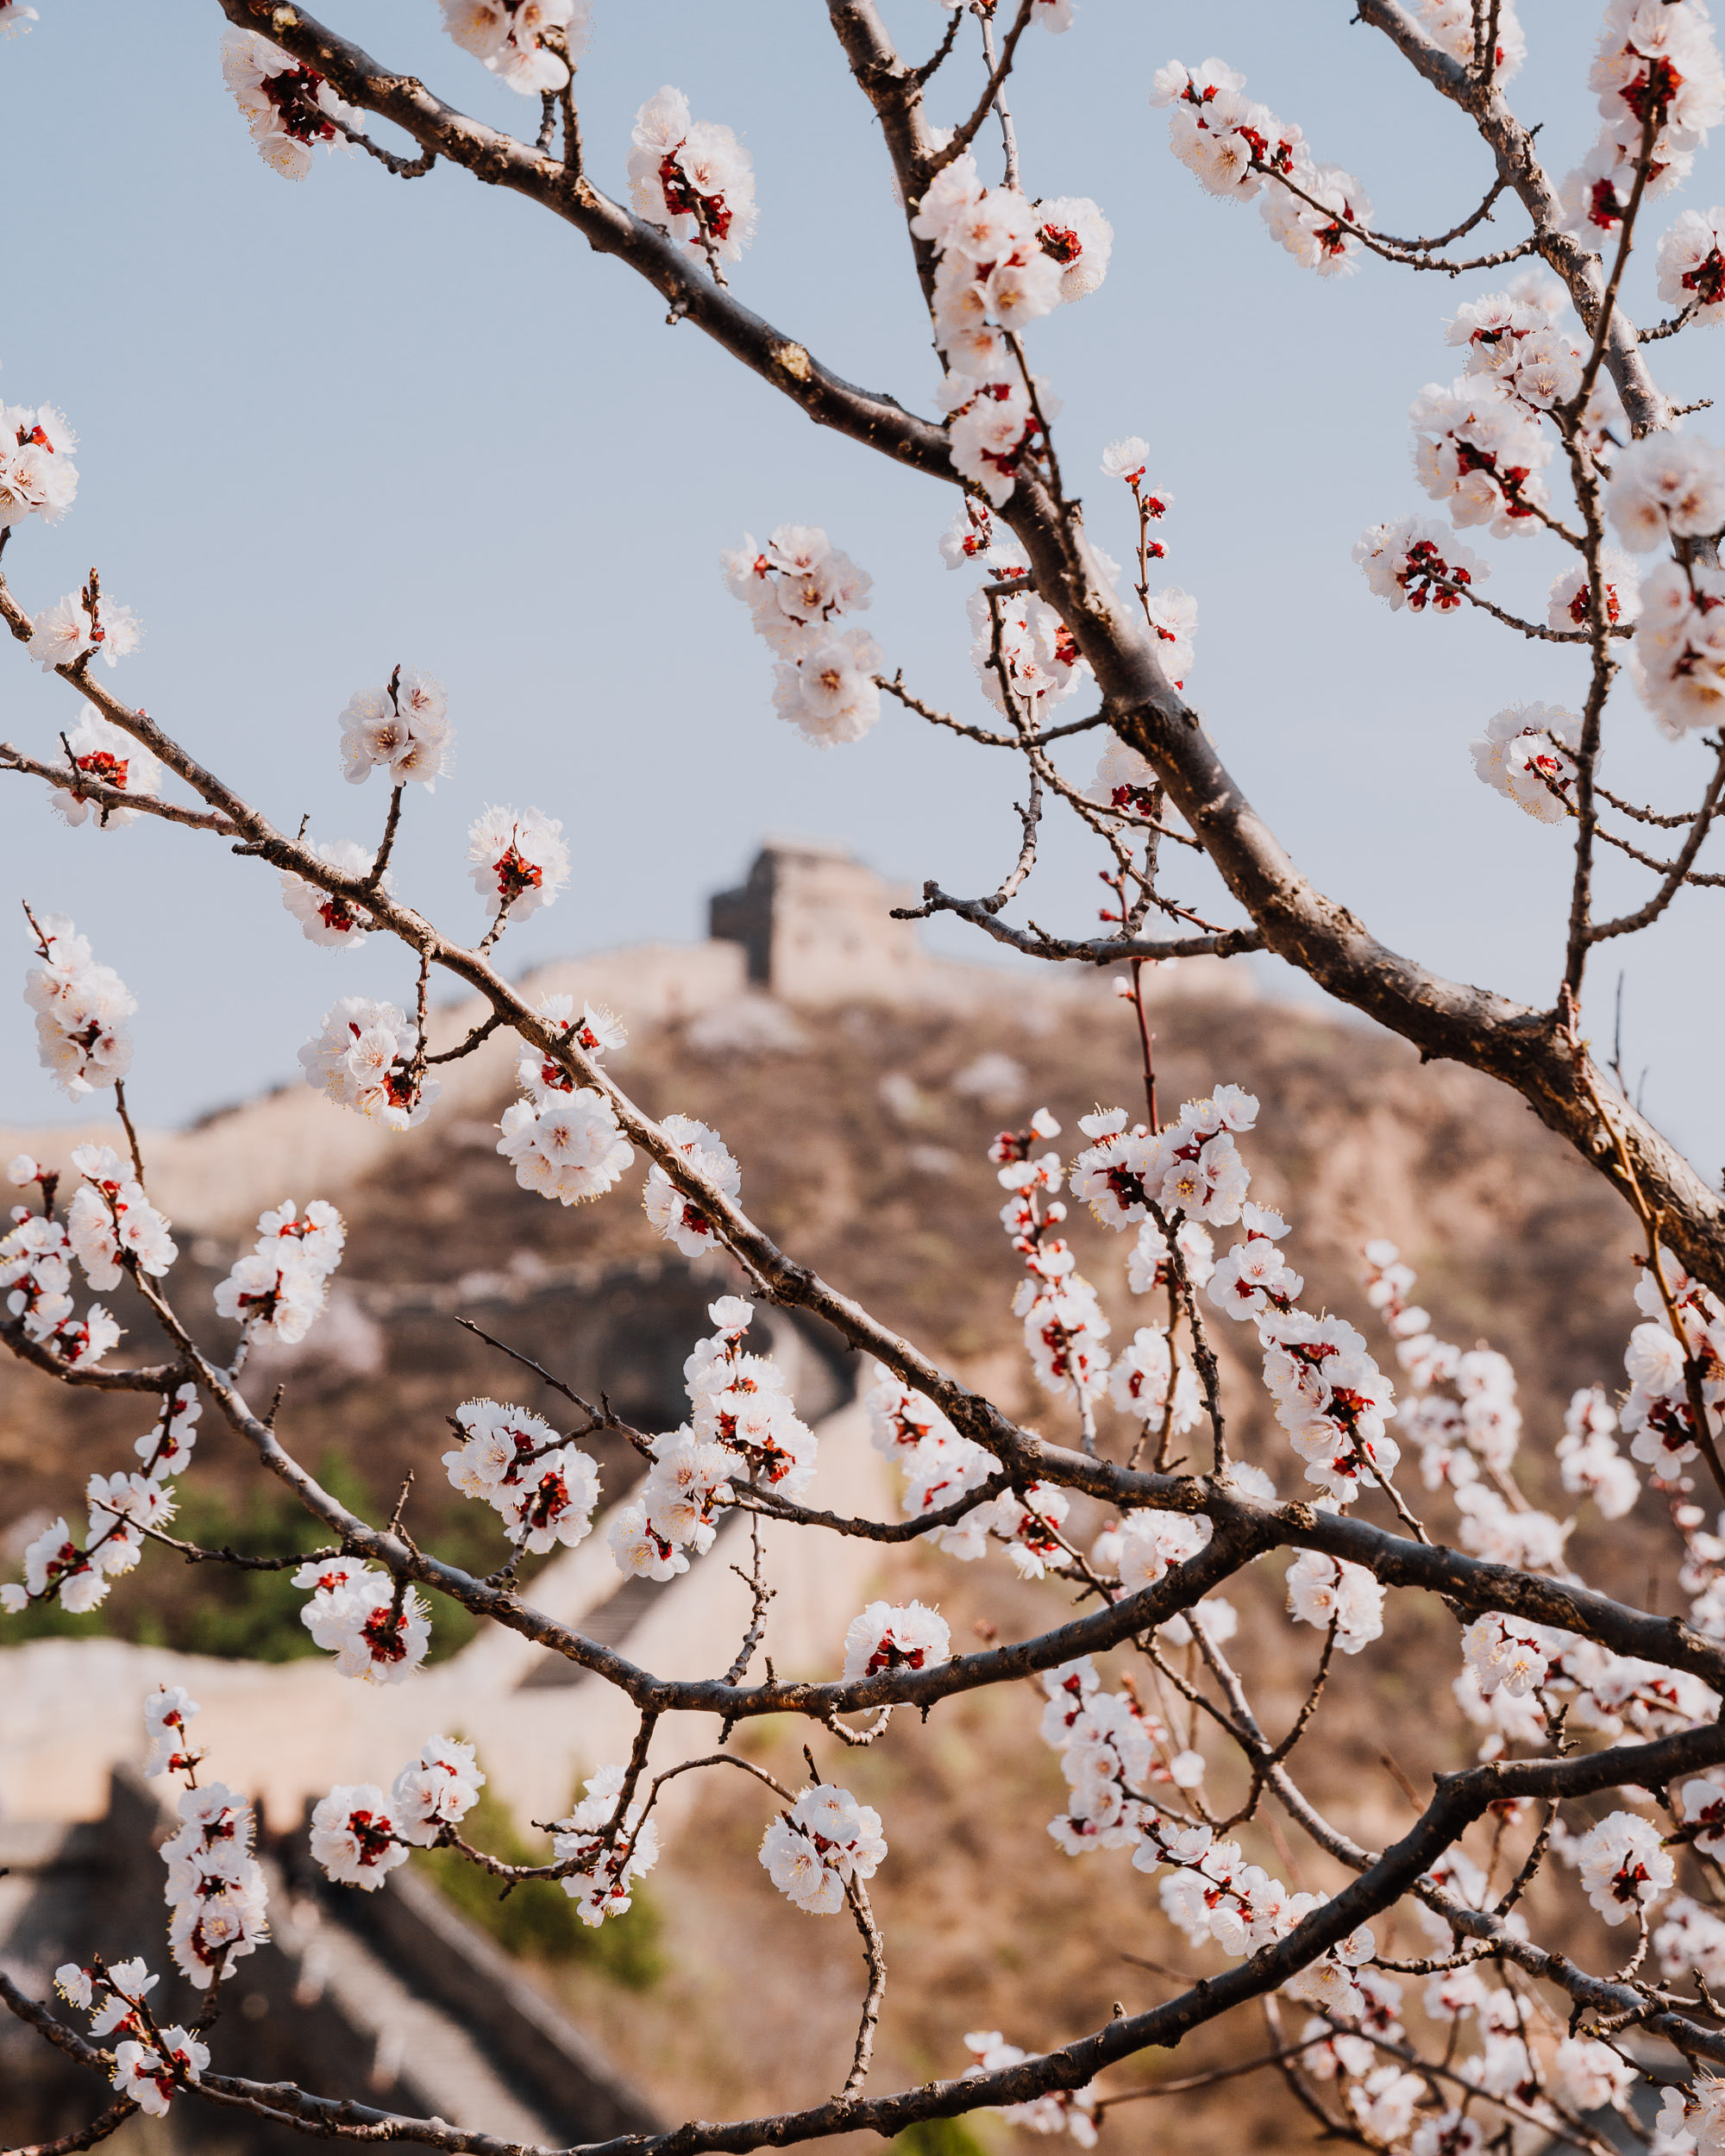 Apricot_Blossoms_Overlooking_Great_Wall